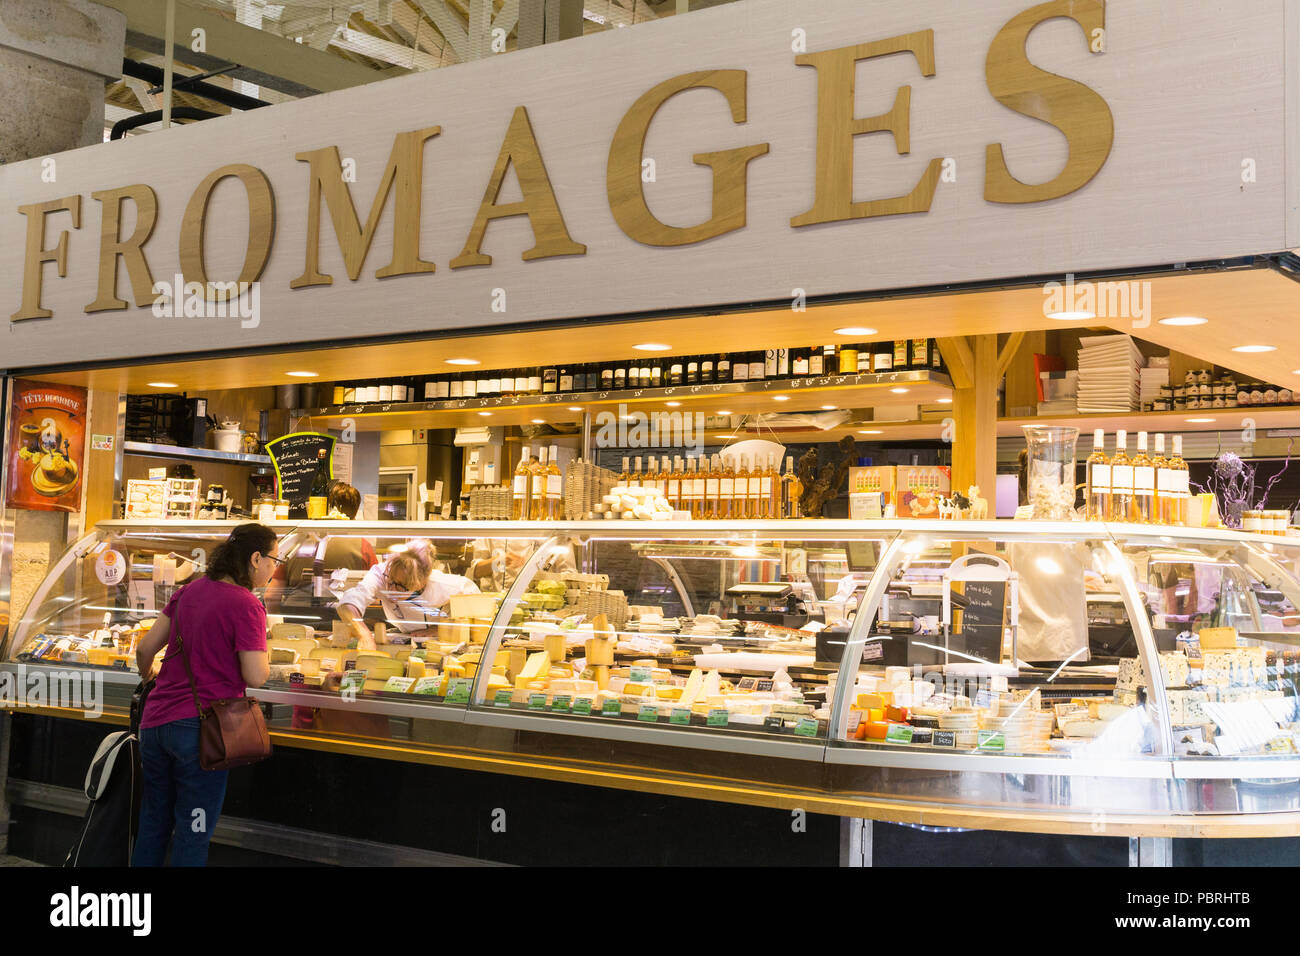 Cheese shop (fromagerie) at Allegri farm market in Paris, France. - Stock Image